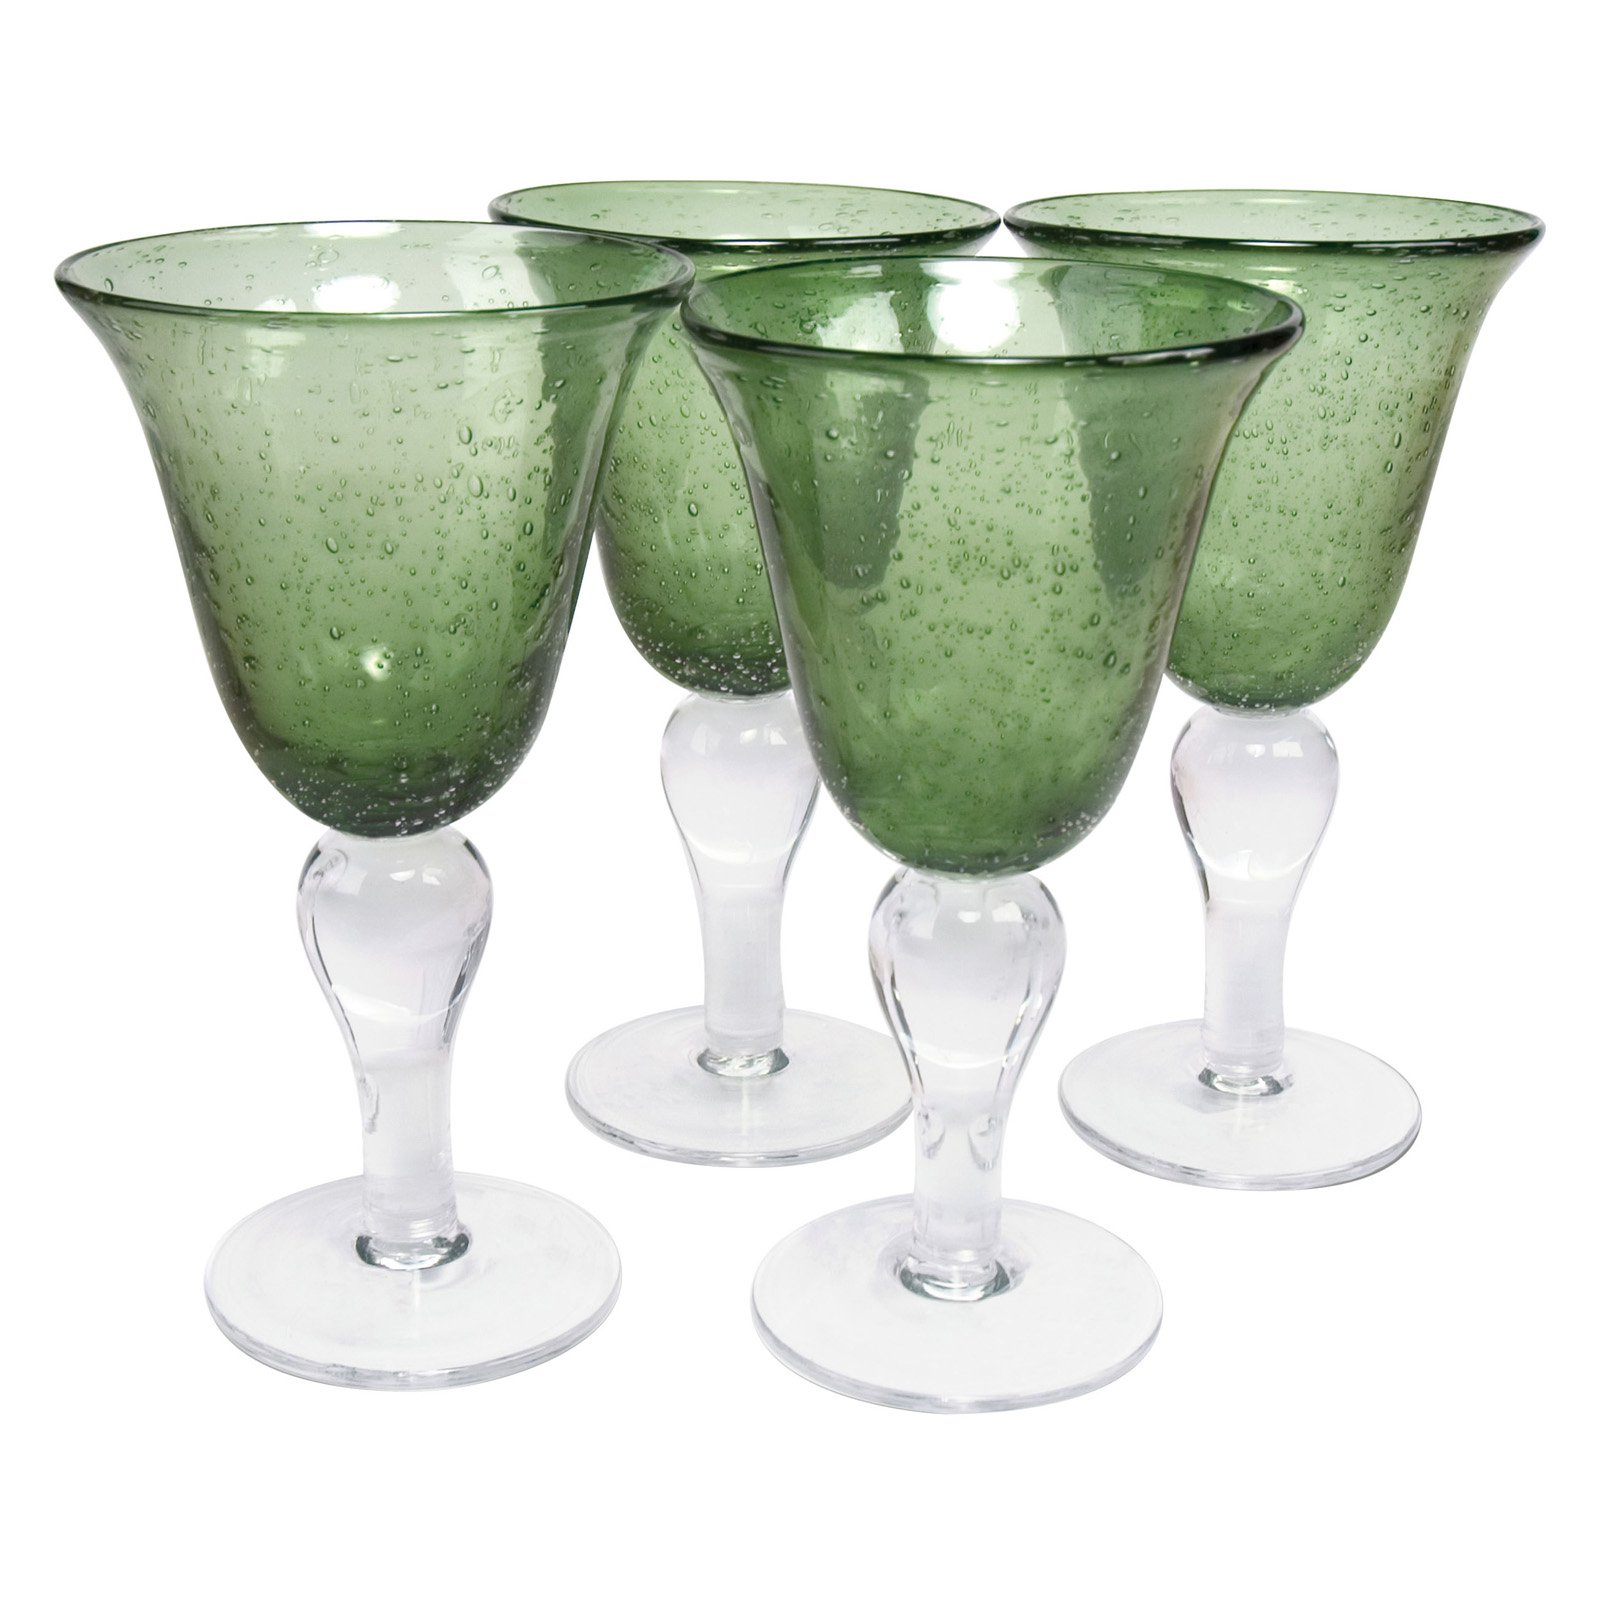 Artland Inc. Iris Sage Goblet Glasses - Set of 4